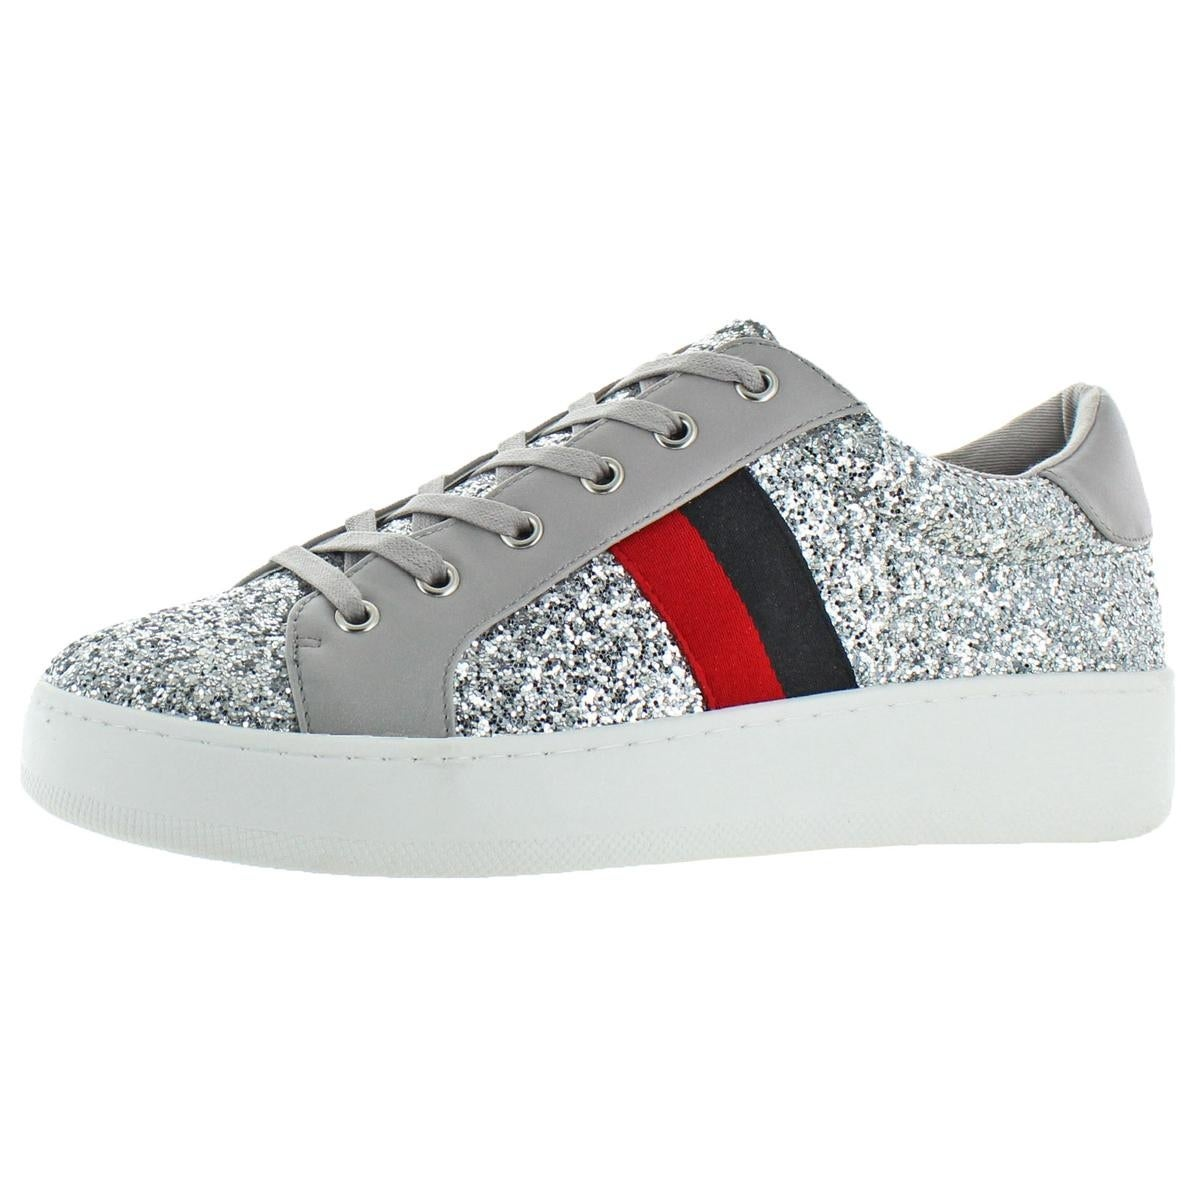 0b05bee81cd Shop Steve Madden Womens Belle Fashion Sneakers Faux Leather Low Top - Free  Shipping Today - Overstock - 26639362